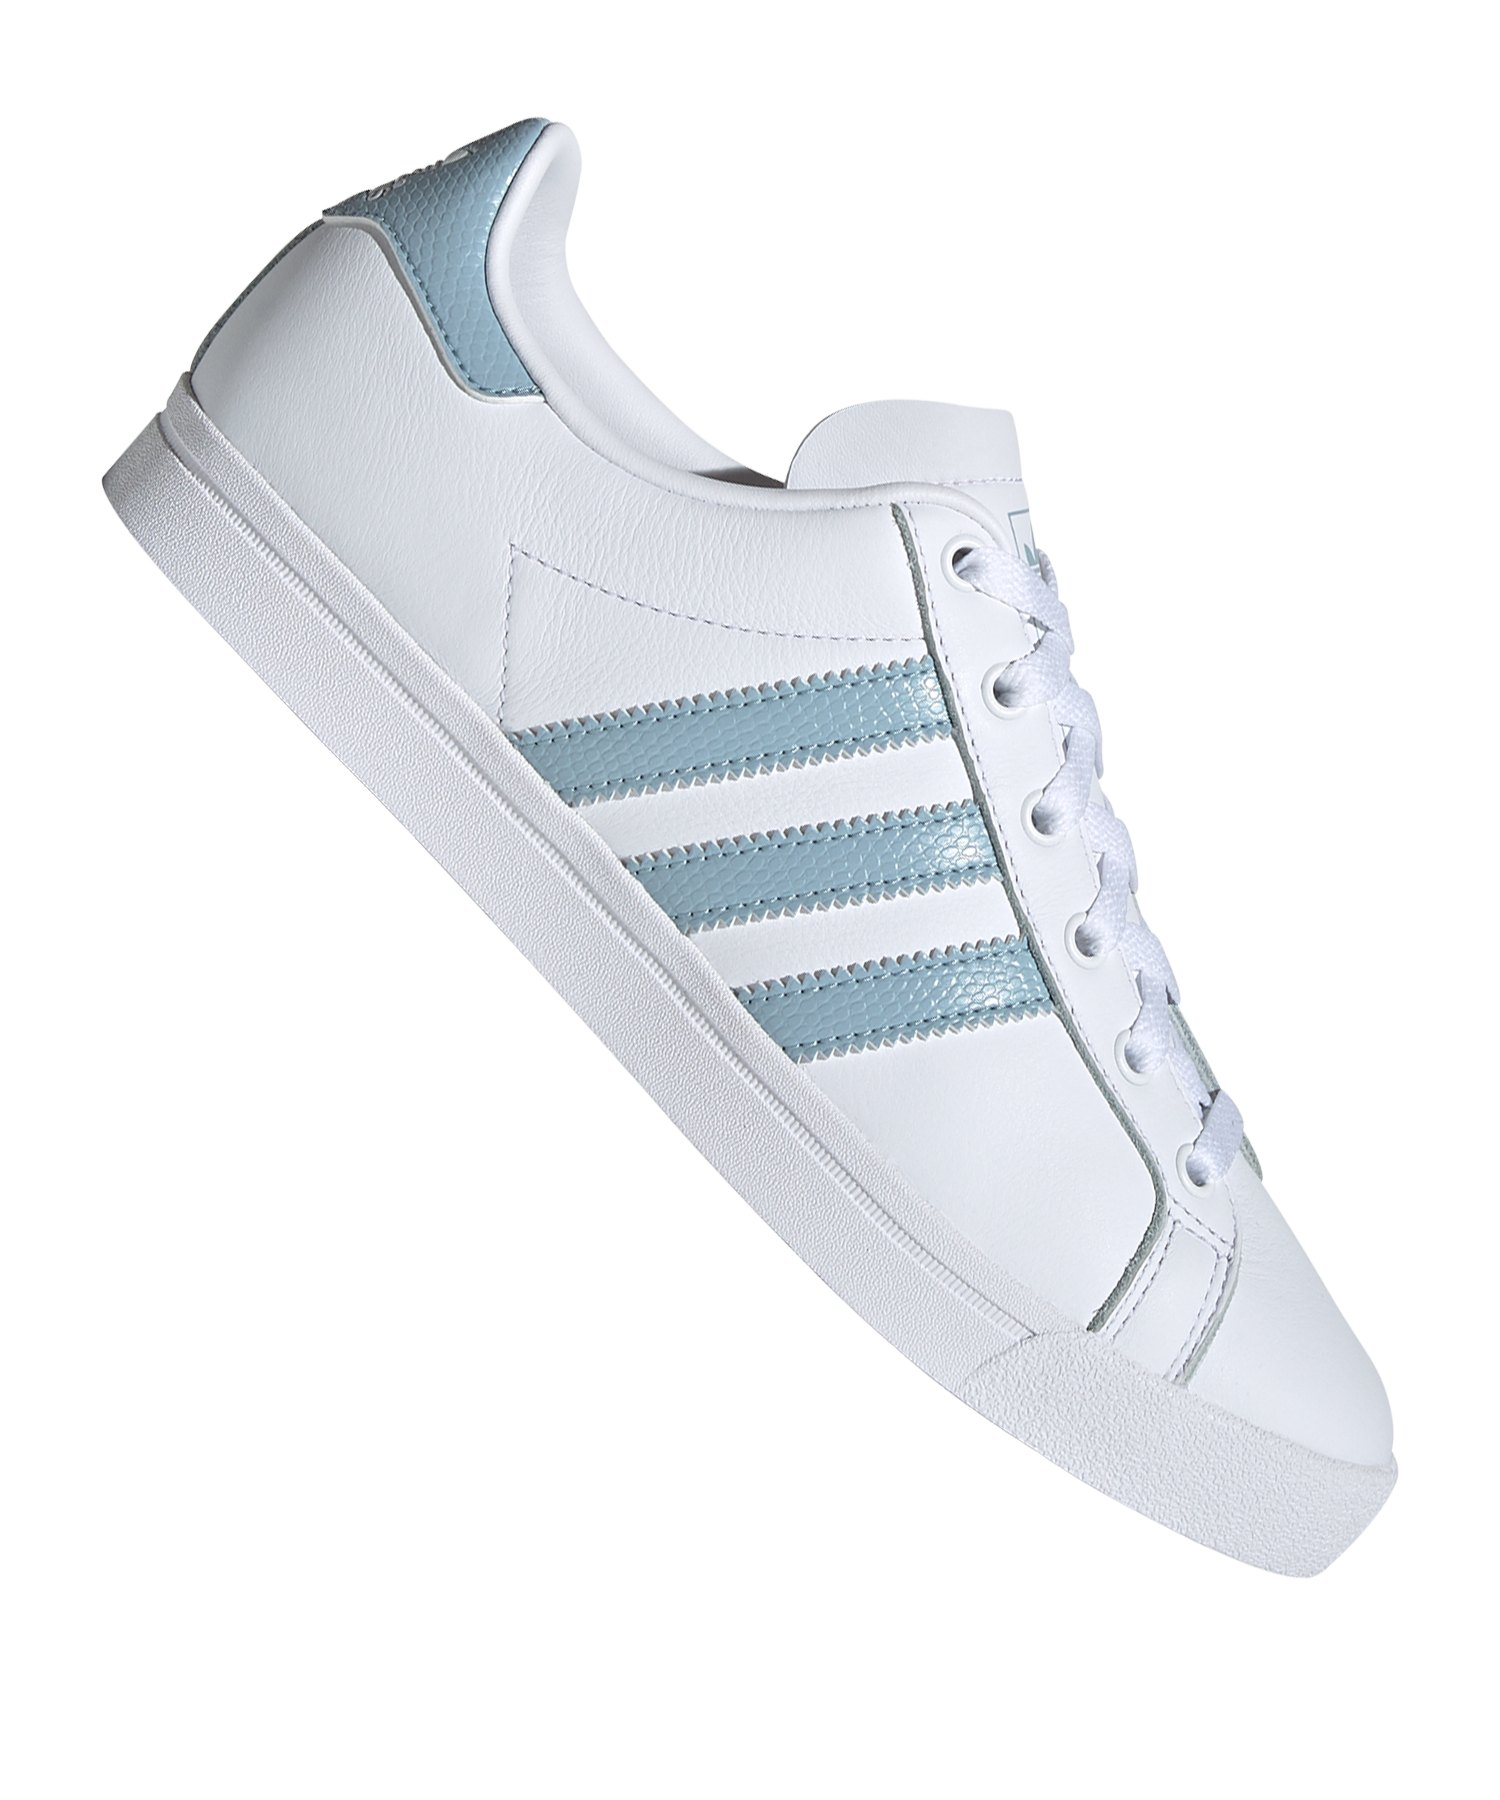 adidas Originals Pro Model Trainingsschuhe Damen Grau